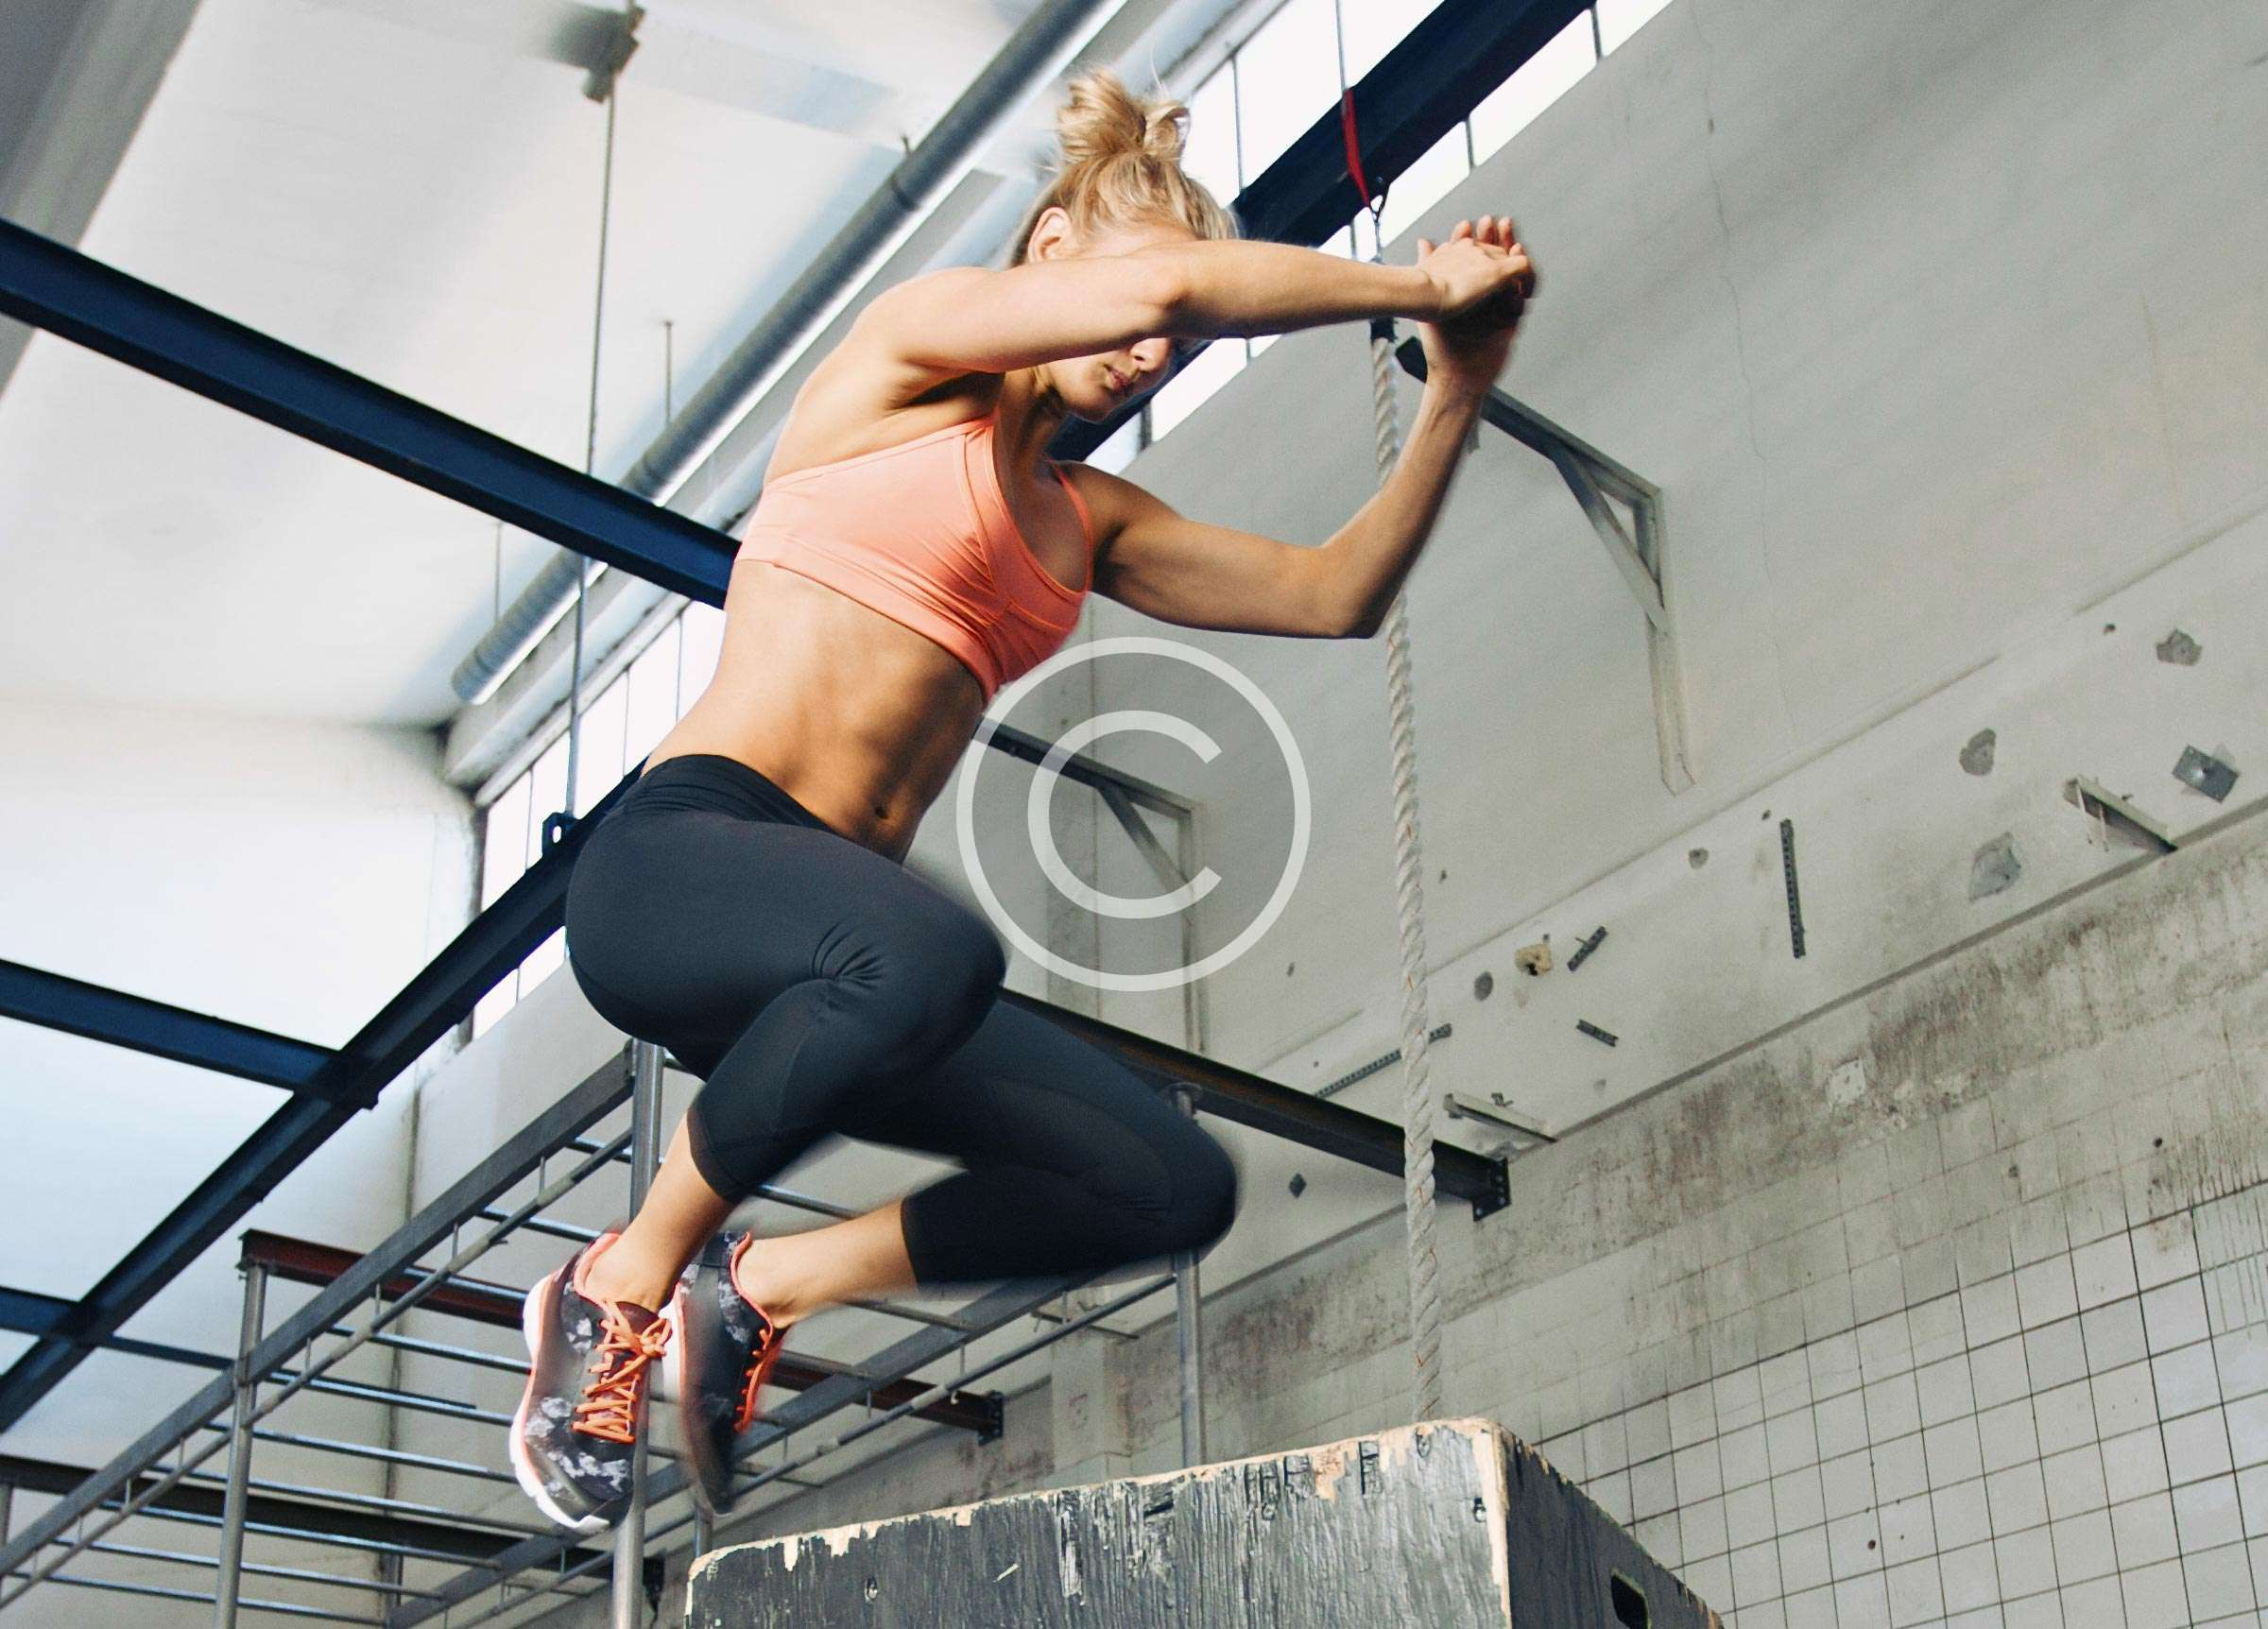 The Most Brutal Crossfit WODs